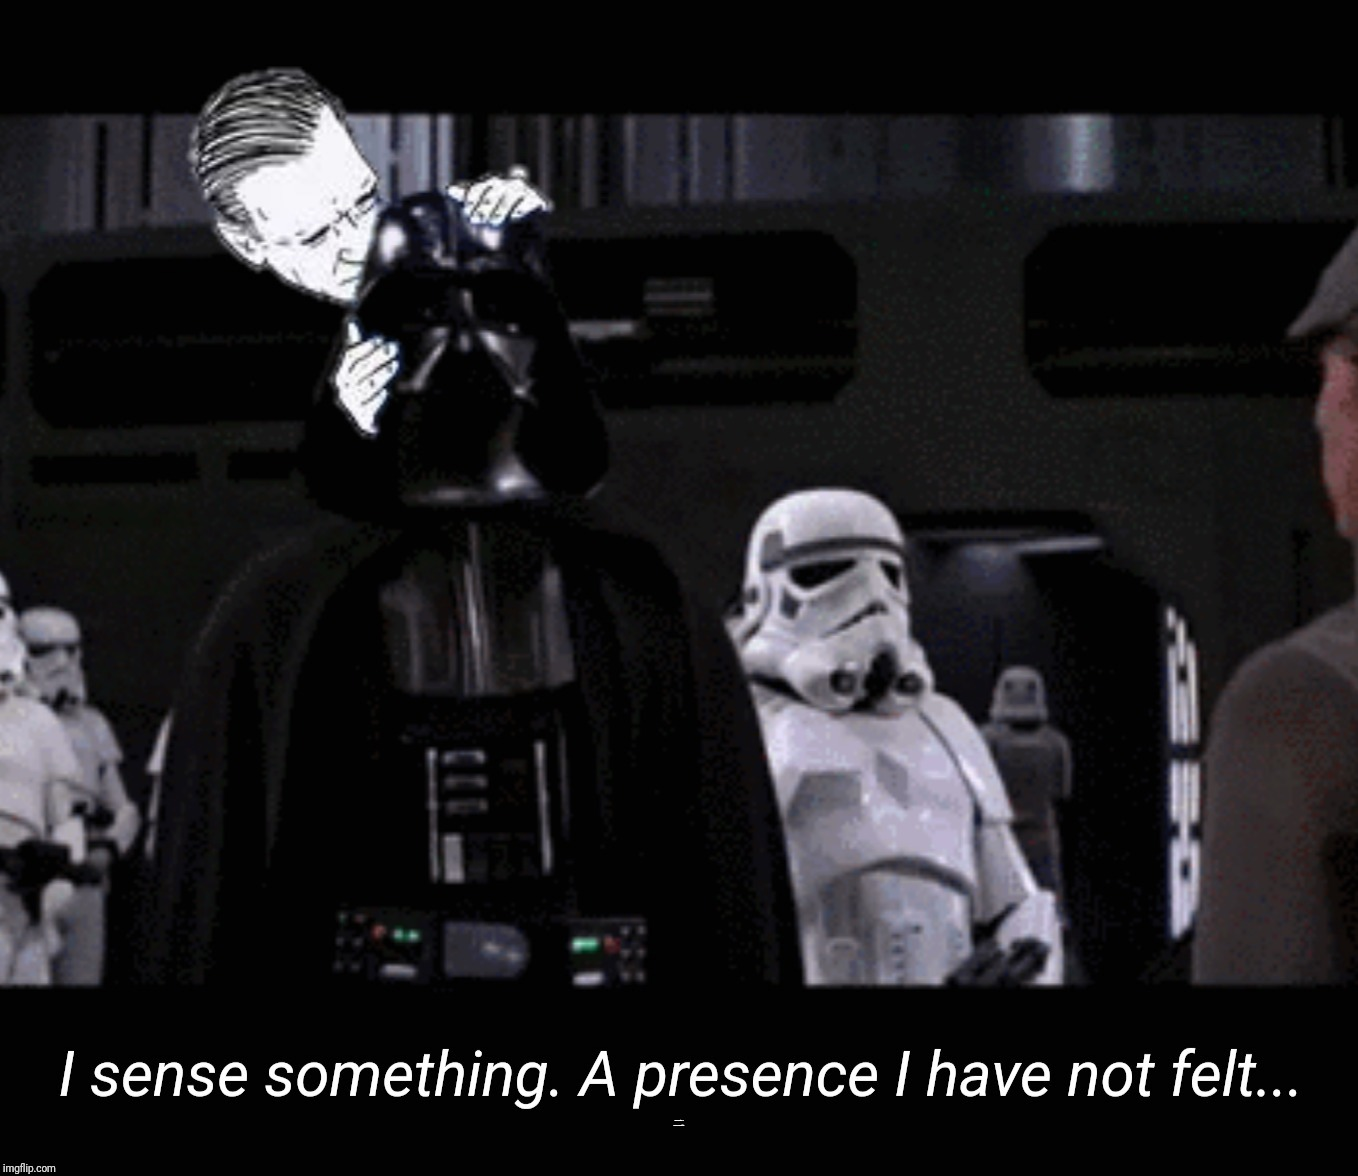 Sniff Sniff | I sense something. A presence I have not felt... | image tagged in memes,politics,joe biden,darth vader,bernie sanders | made w/ Imgflip meme maker